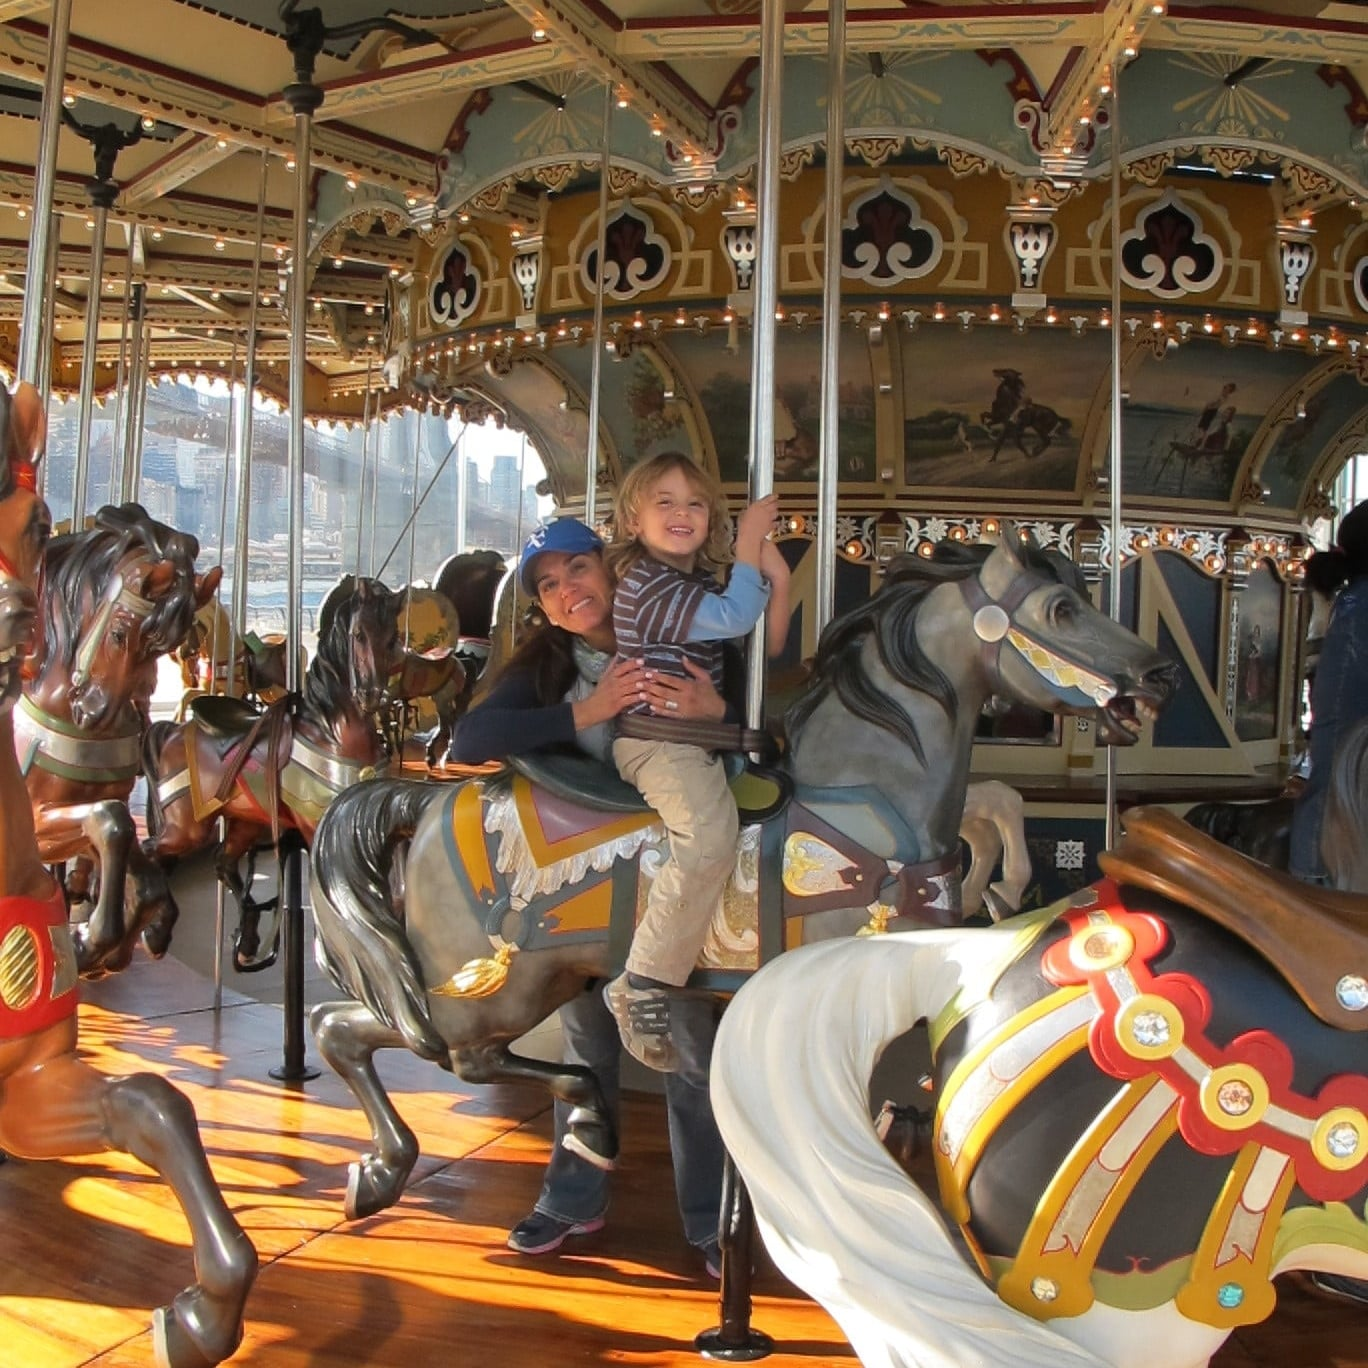 This carousel, built in 1922, was acquired and restored by Jane Wallentas in the eighties. That's why now it is known as Jane's Carousel. Photo: Marco Dettling